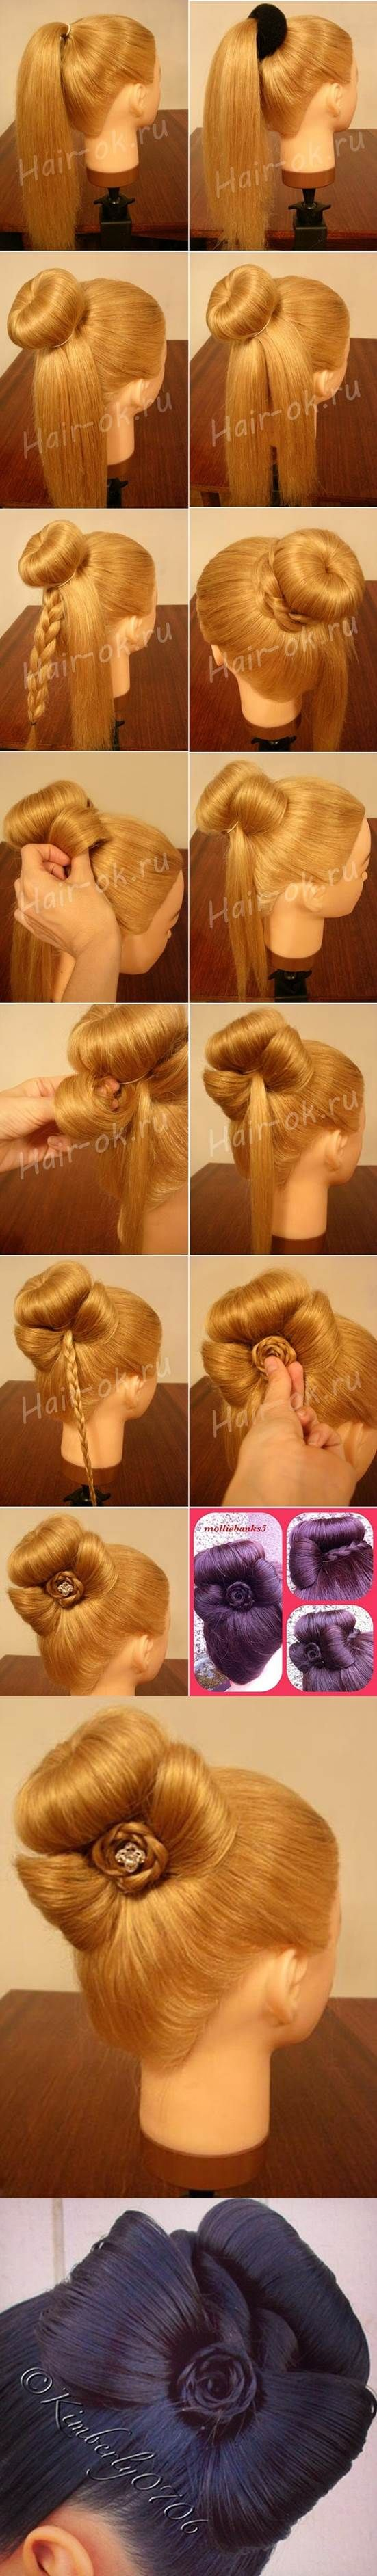 DIY Elegant Bun Decorated with a Bow | iCreativeIdeas.com Like Us on Facebook ==> https://www.facebook.com/icreativeideas